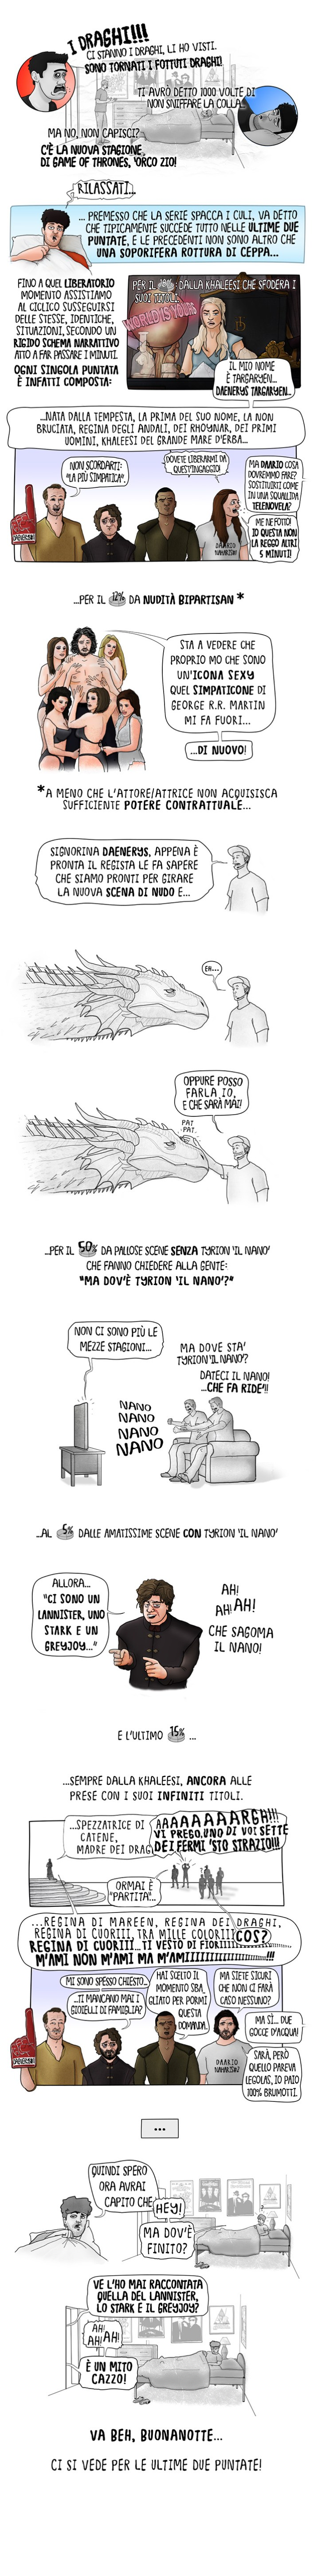 Analisi Game of Thrones